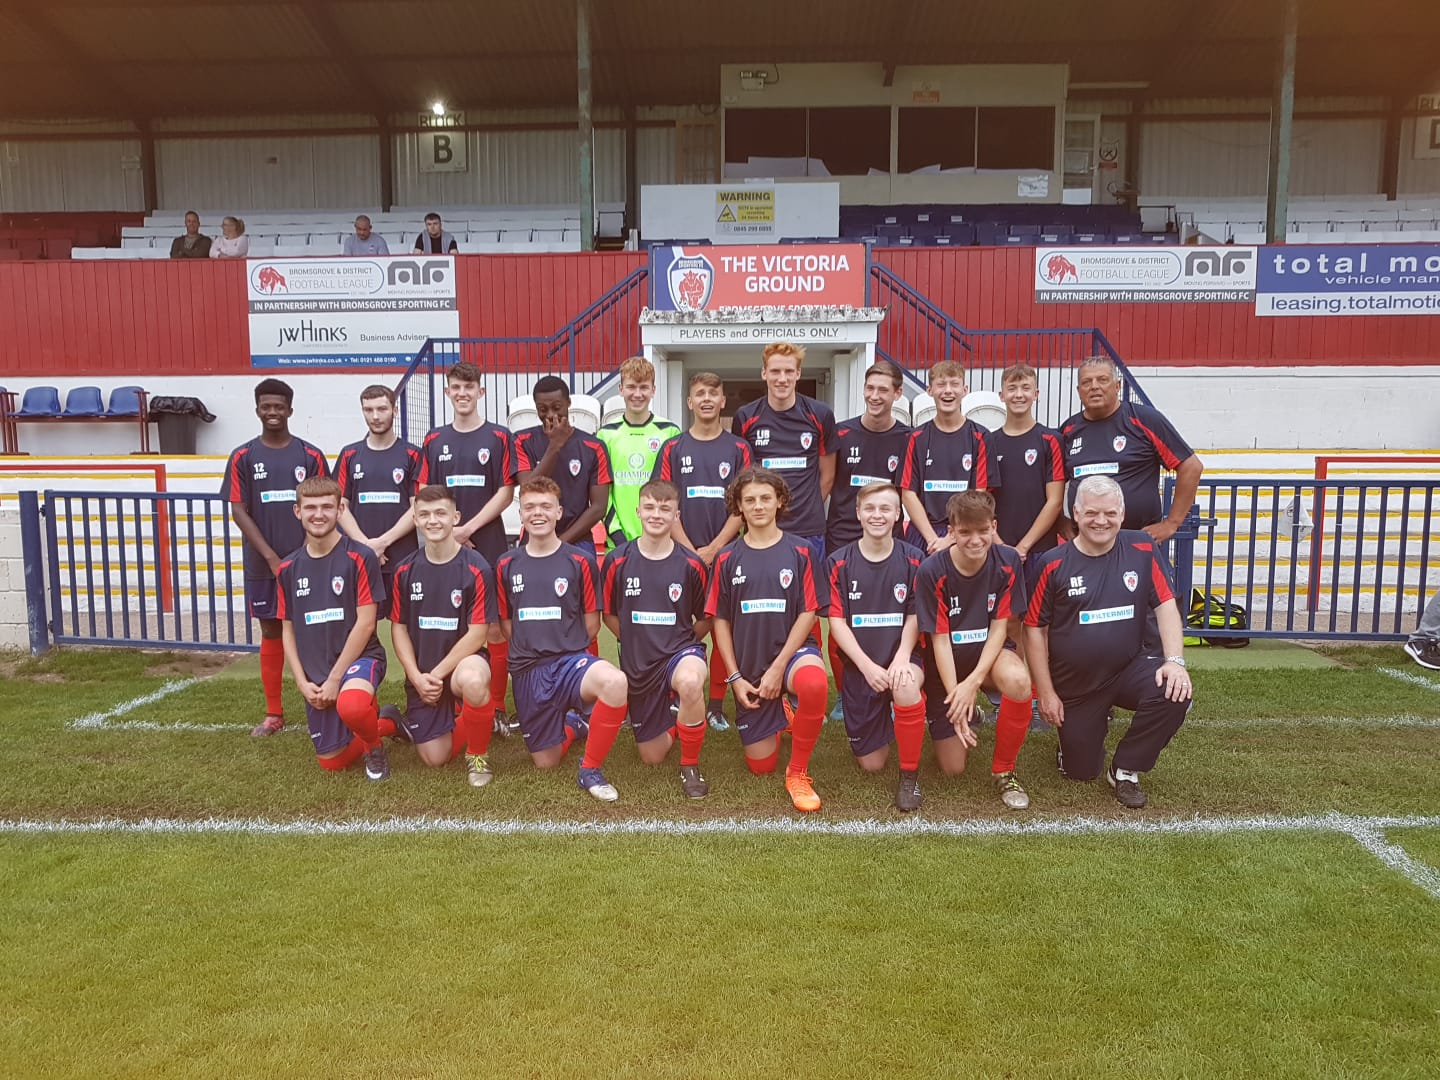 Bromsgrove Sporting Under 18s score new pre-match training kit from Filtermist